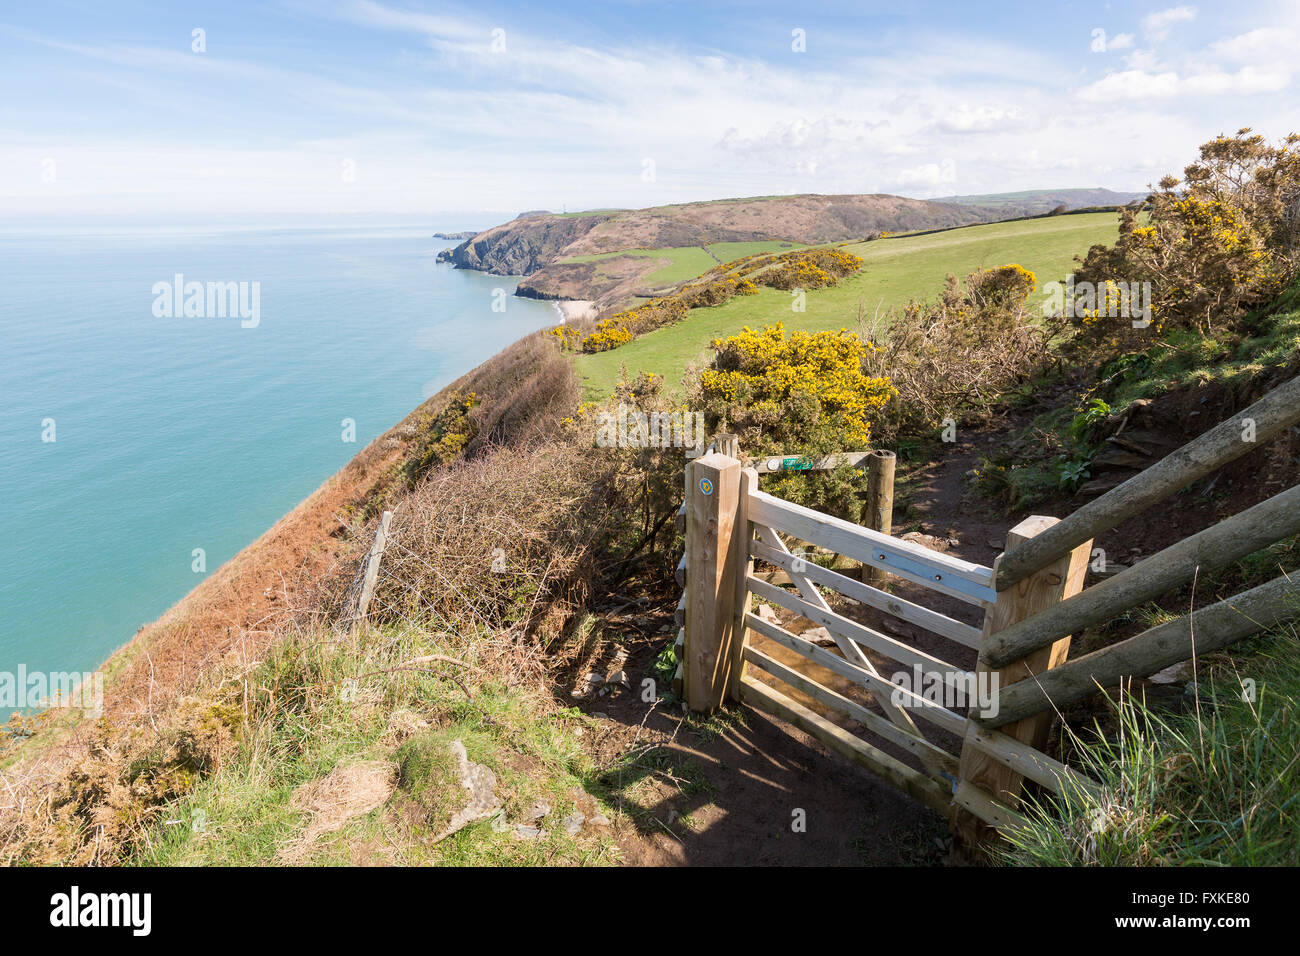 Wooden gate leading onto the Cardigan Bay Coastal Path. Penbryn Beach can be seen in the distance. - Stock Image